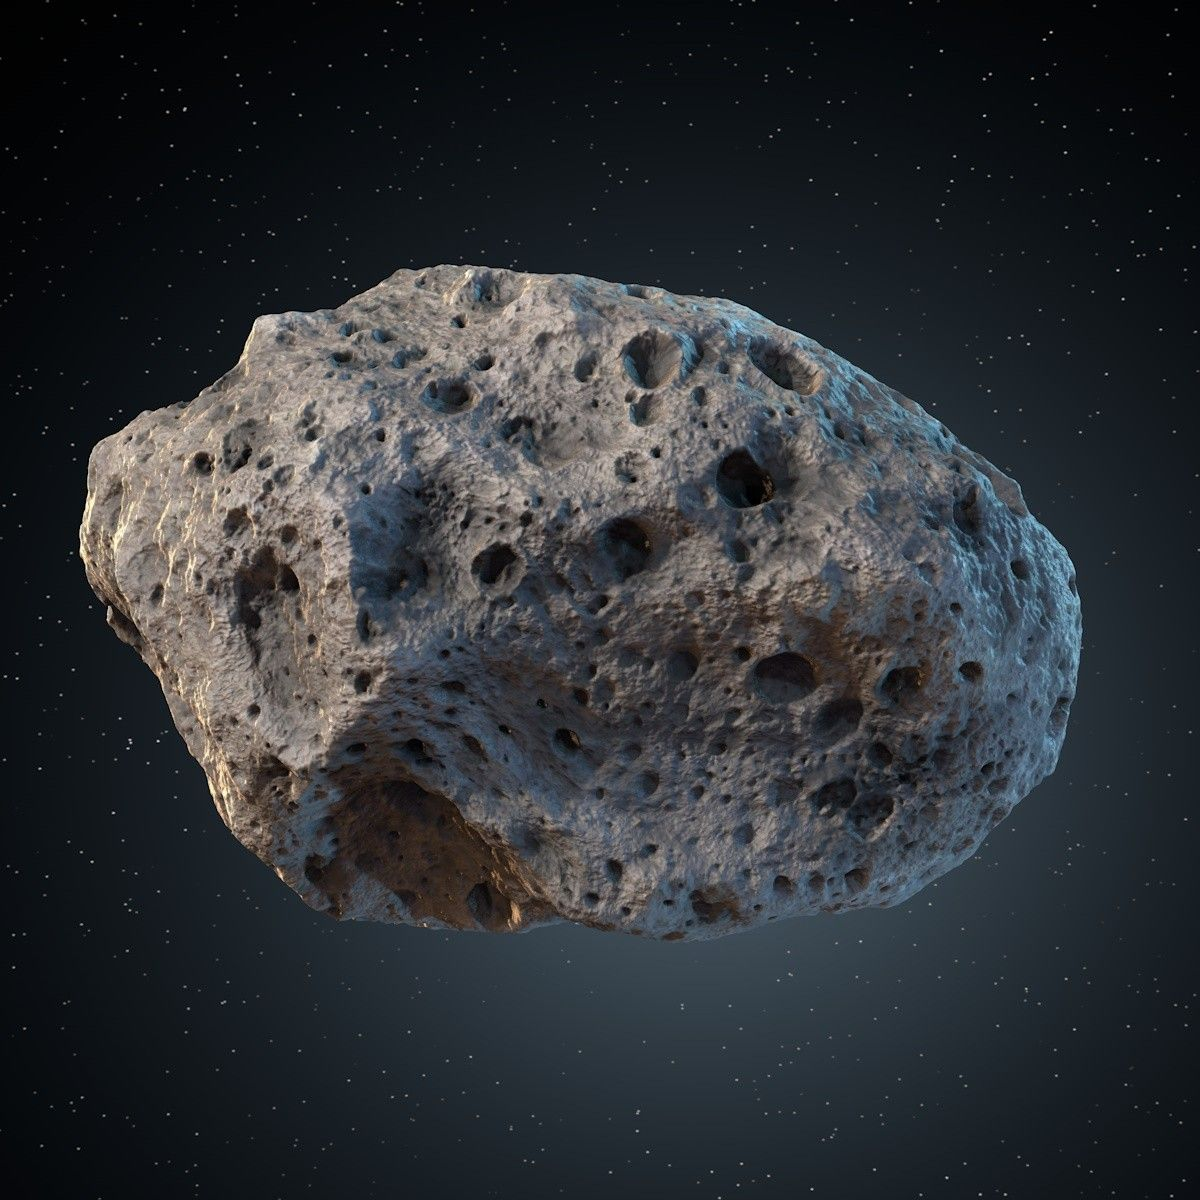 What Are The Differences Between An Asteroid Comet Meteoroid Meteor and Meteorite Asteroid A relatively small inactive rocky body orbiting the Sun